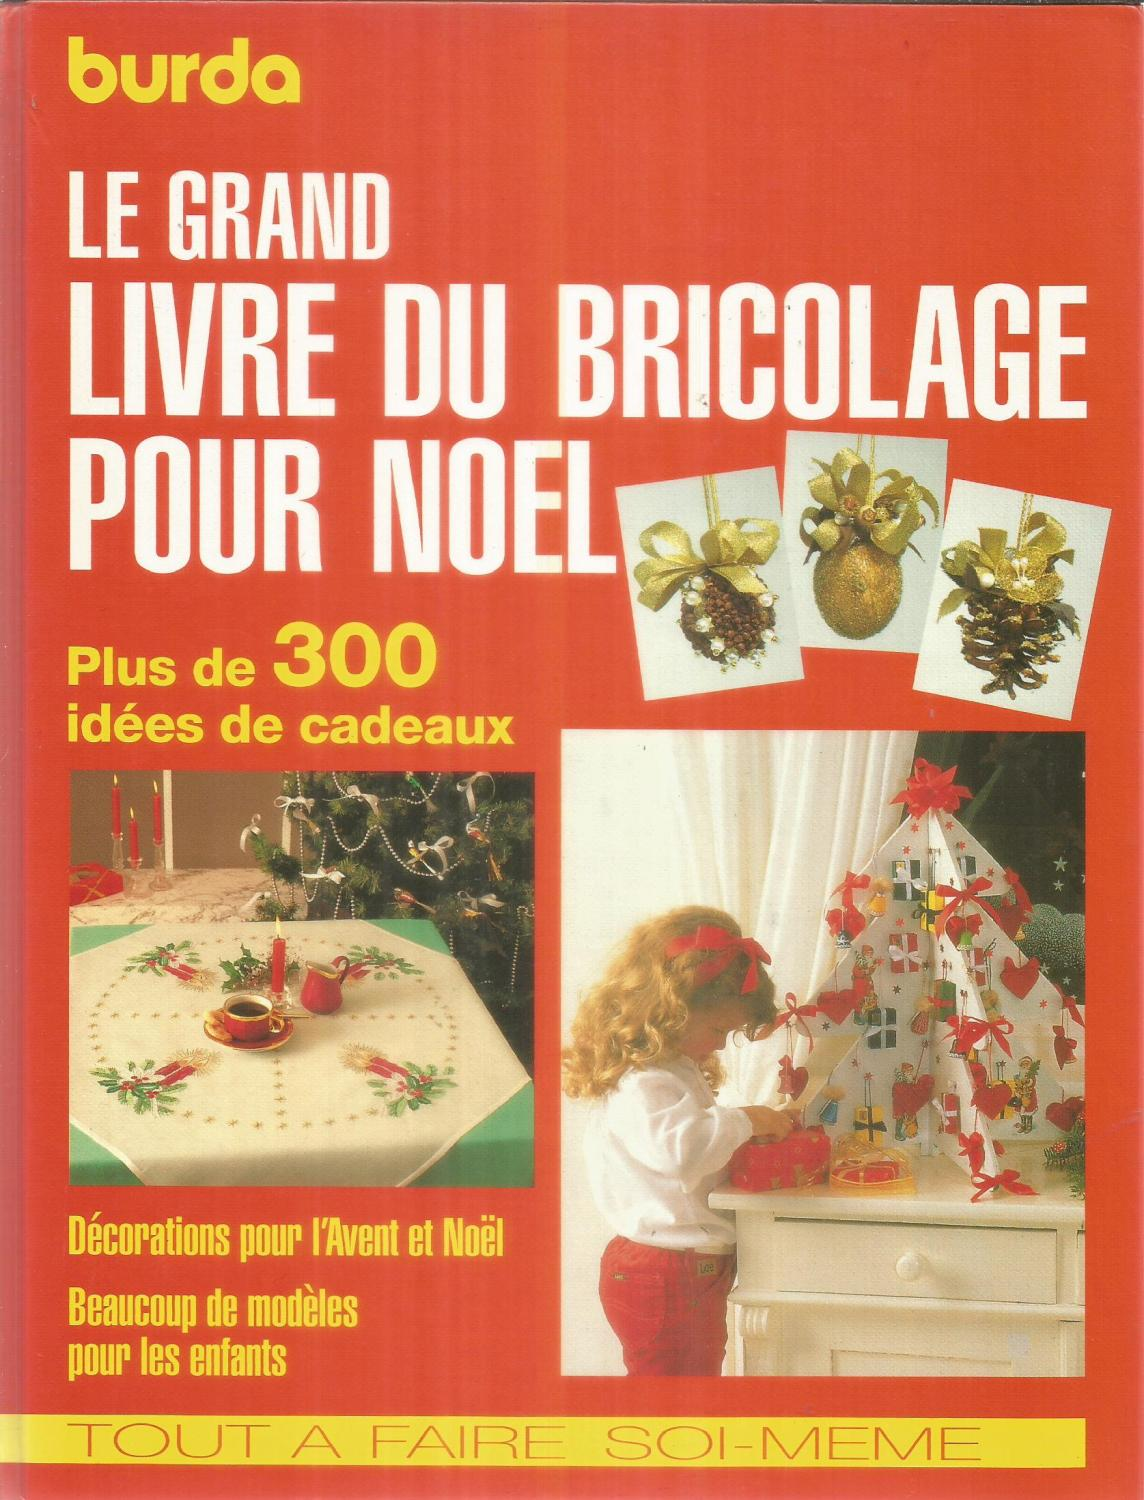 burda k 615 le grand livre du bricolage pour noel by collectif dipa sa 9783889780287. Black Bedroom Furniture Sets. Home Design Ideas